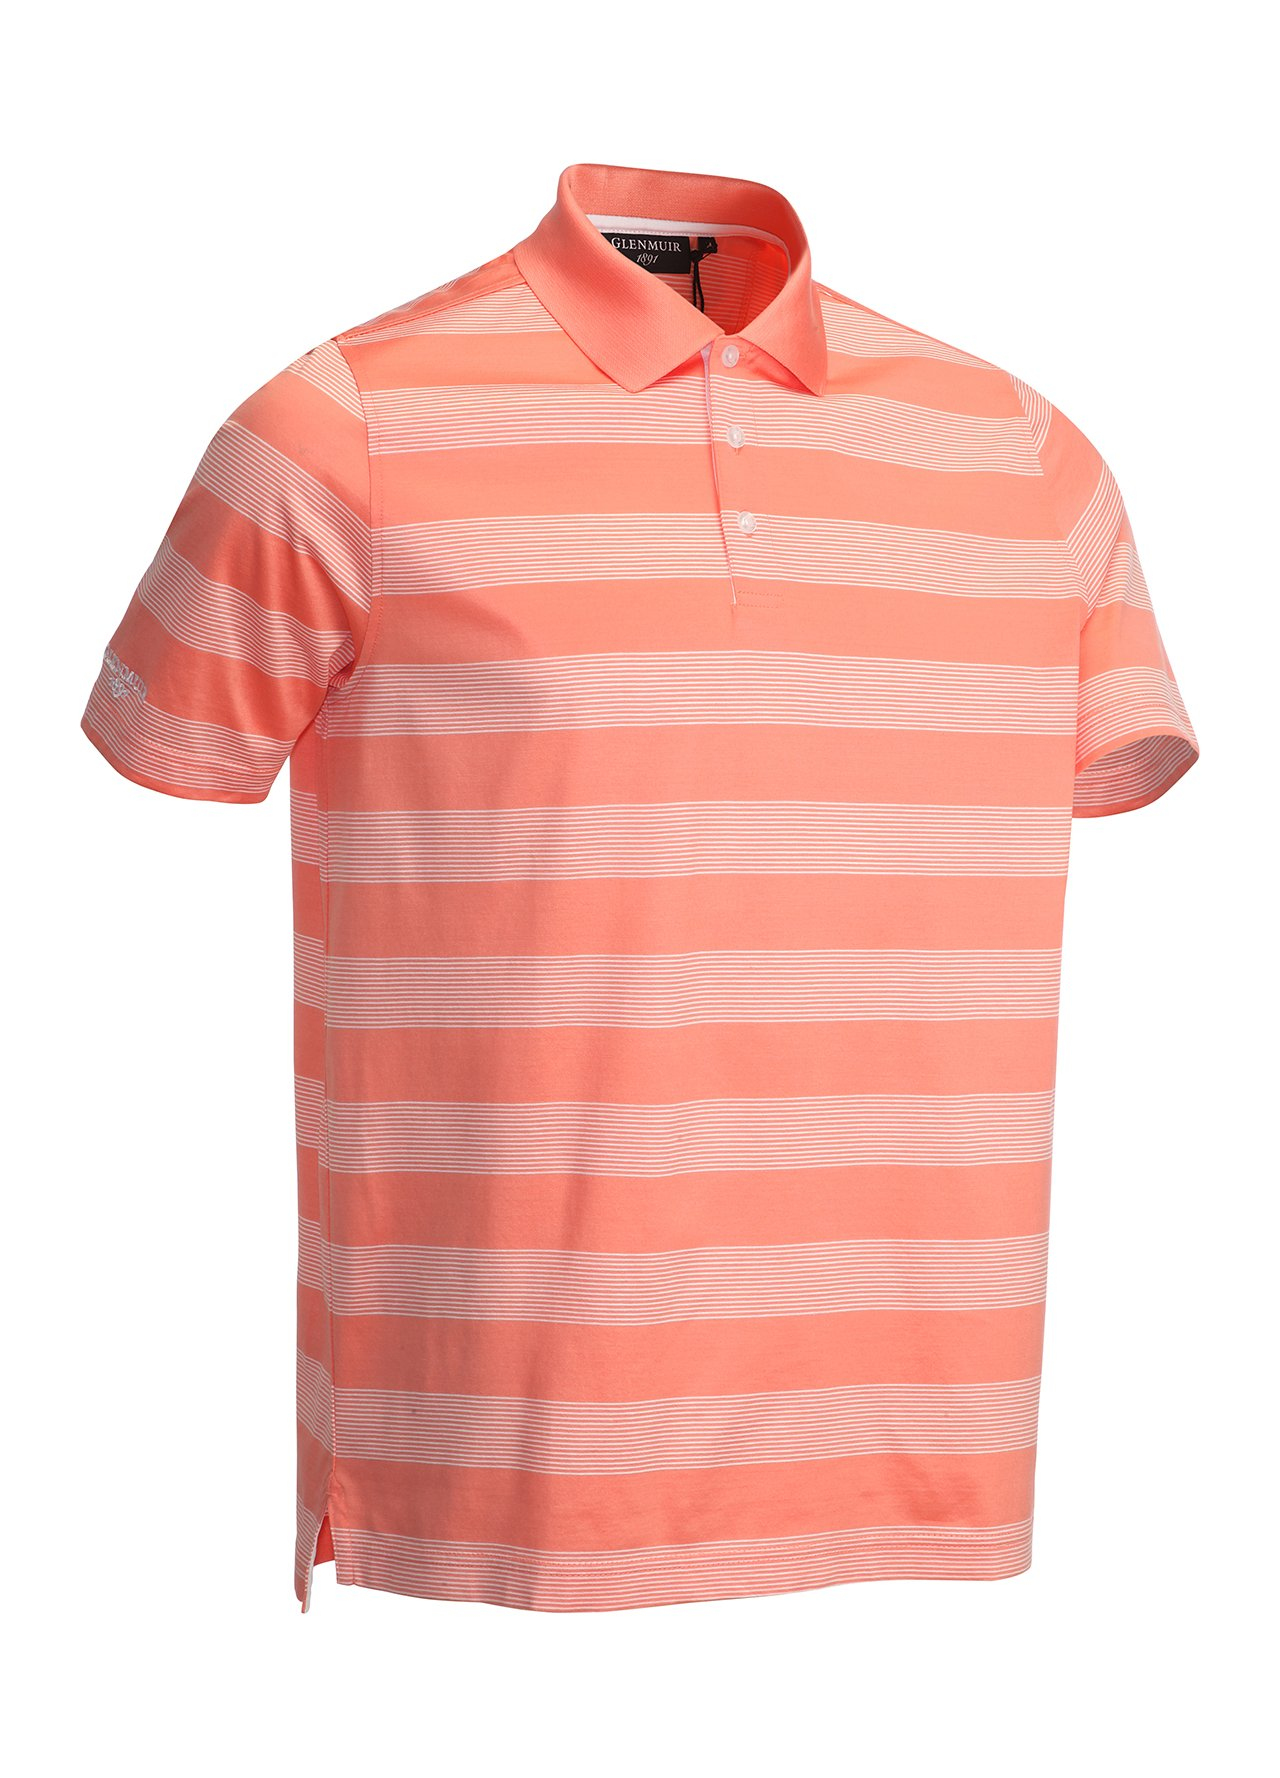 Glenmuir mercerised golf polo shirt coral white large